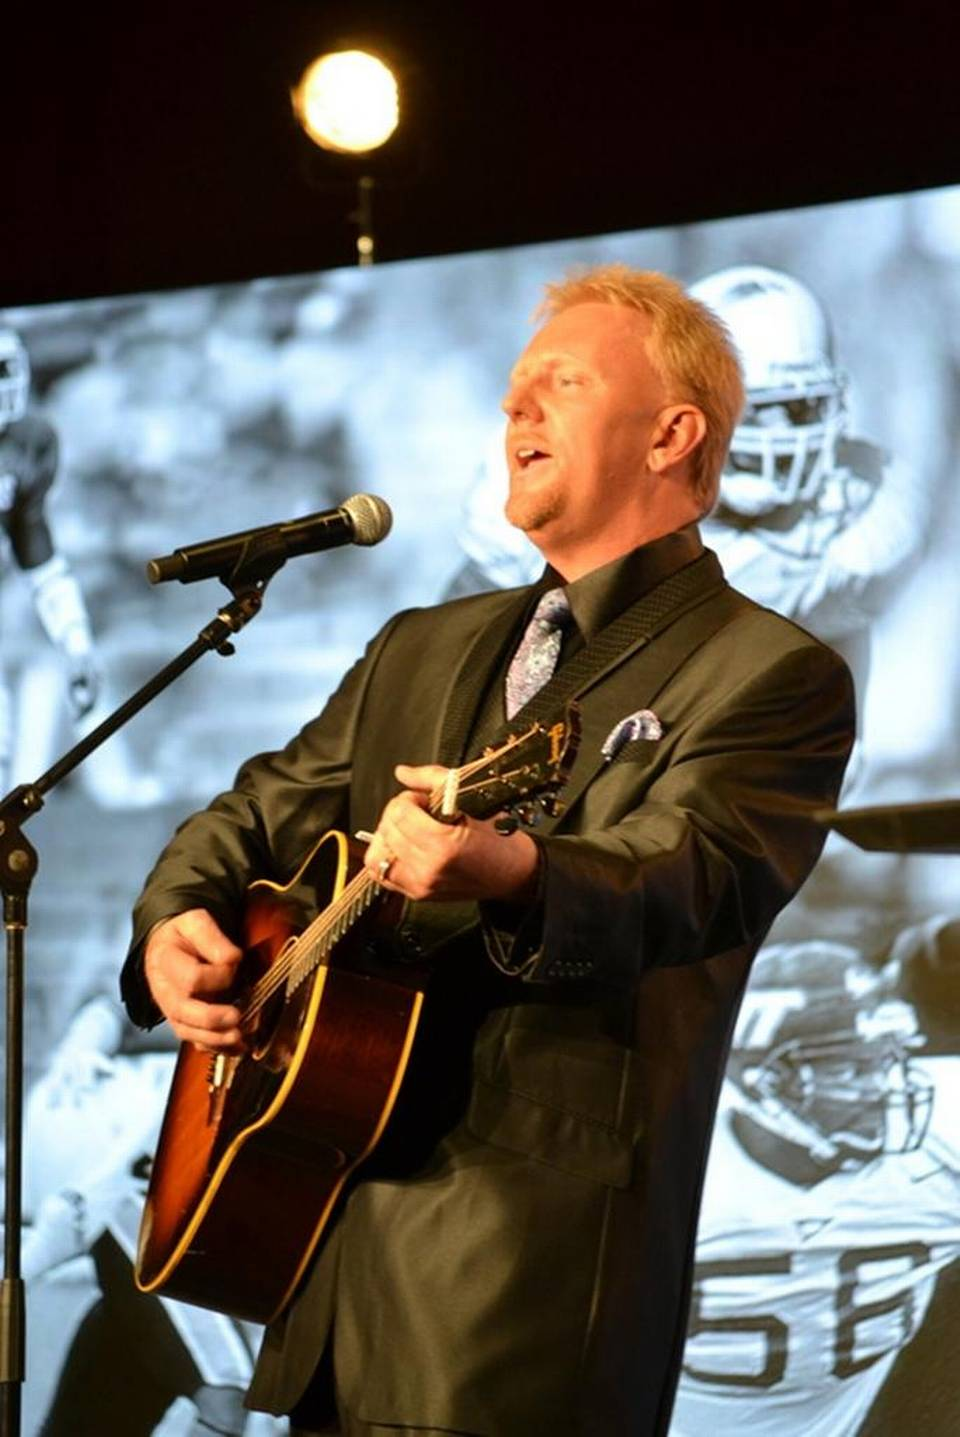 Singer Shares His Talents, Songs Locally